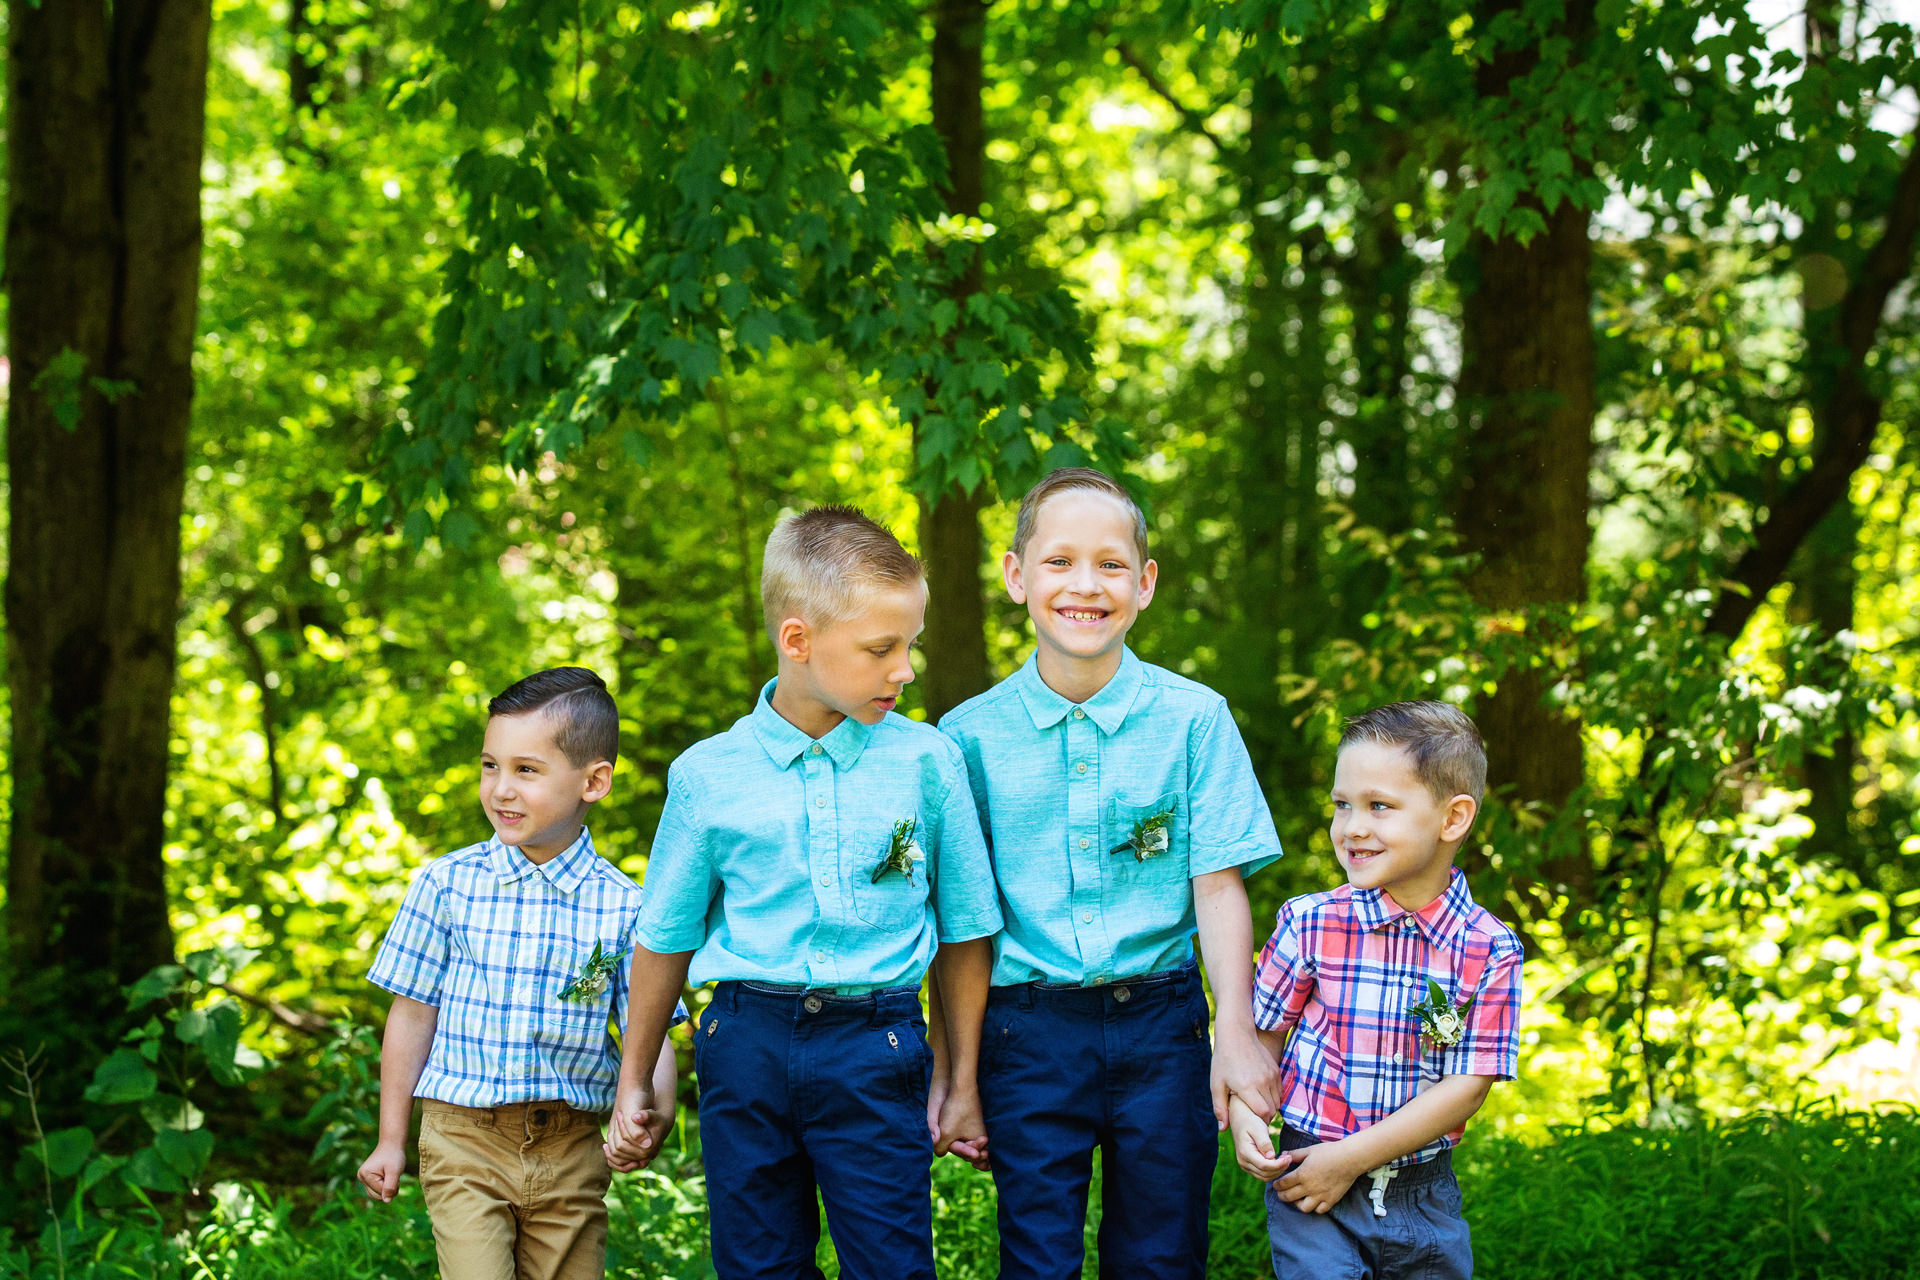 NJ Outdoor Elopement Kids Portrait   The boys giggle and smile together as they prepare to take a portrait